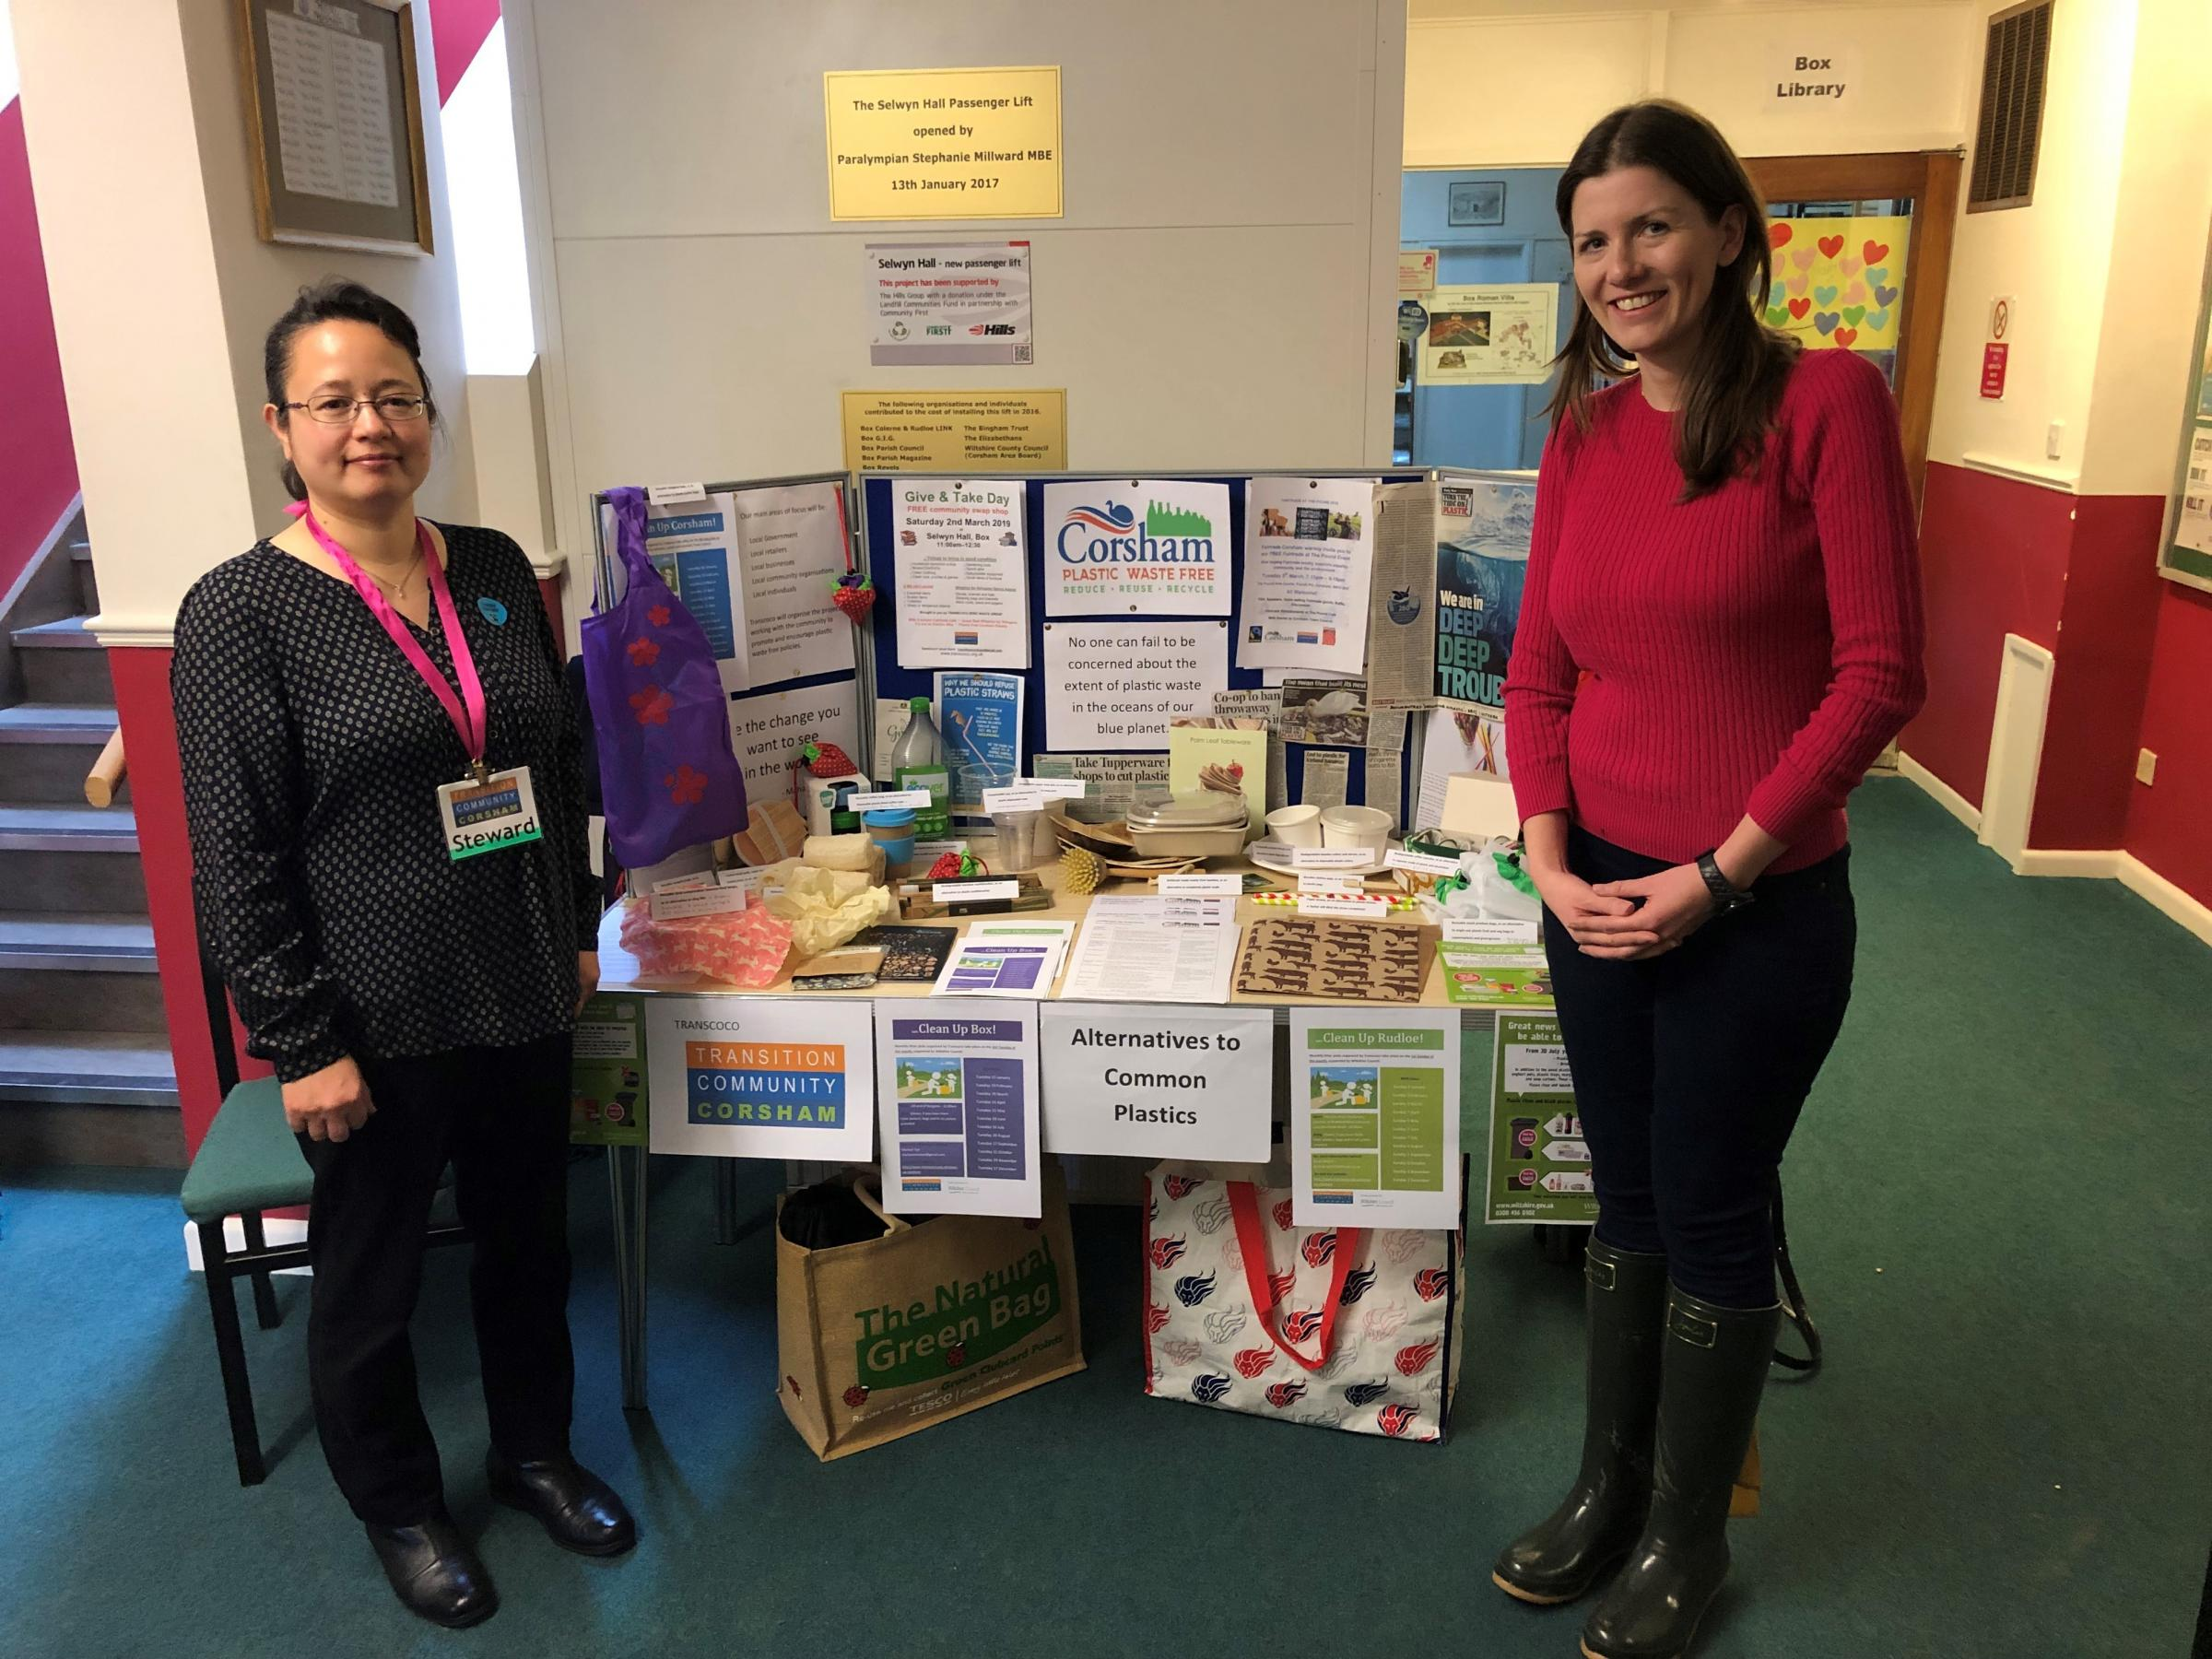 Michelle Donelan MP visits Transition Community Corsham's Give and Take Event